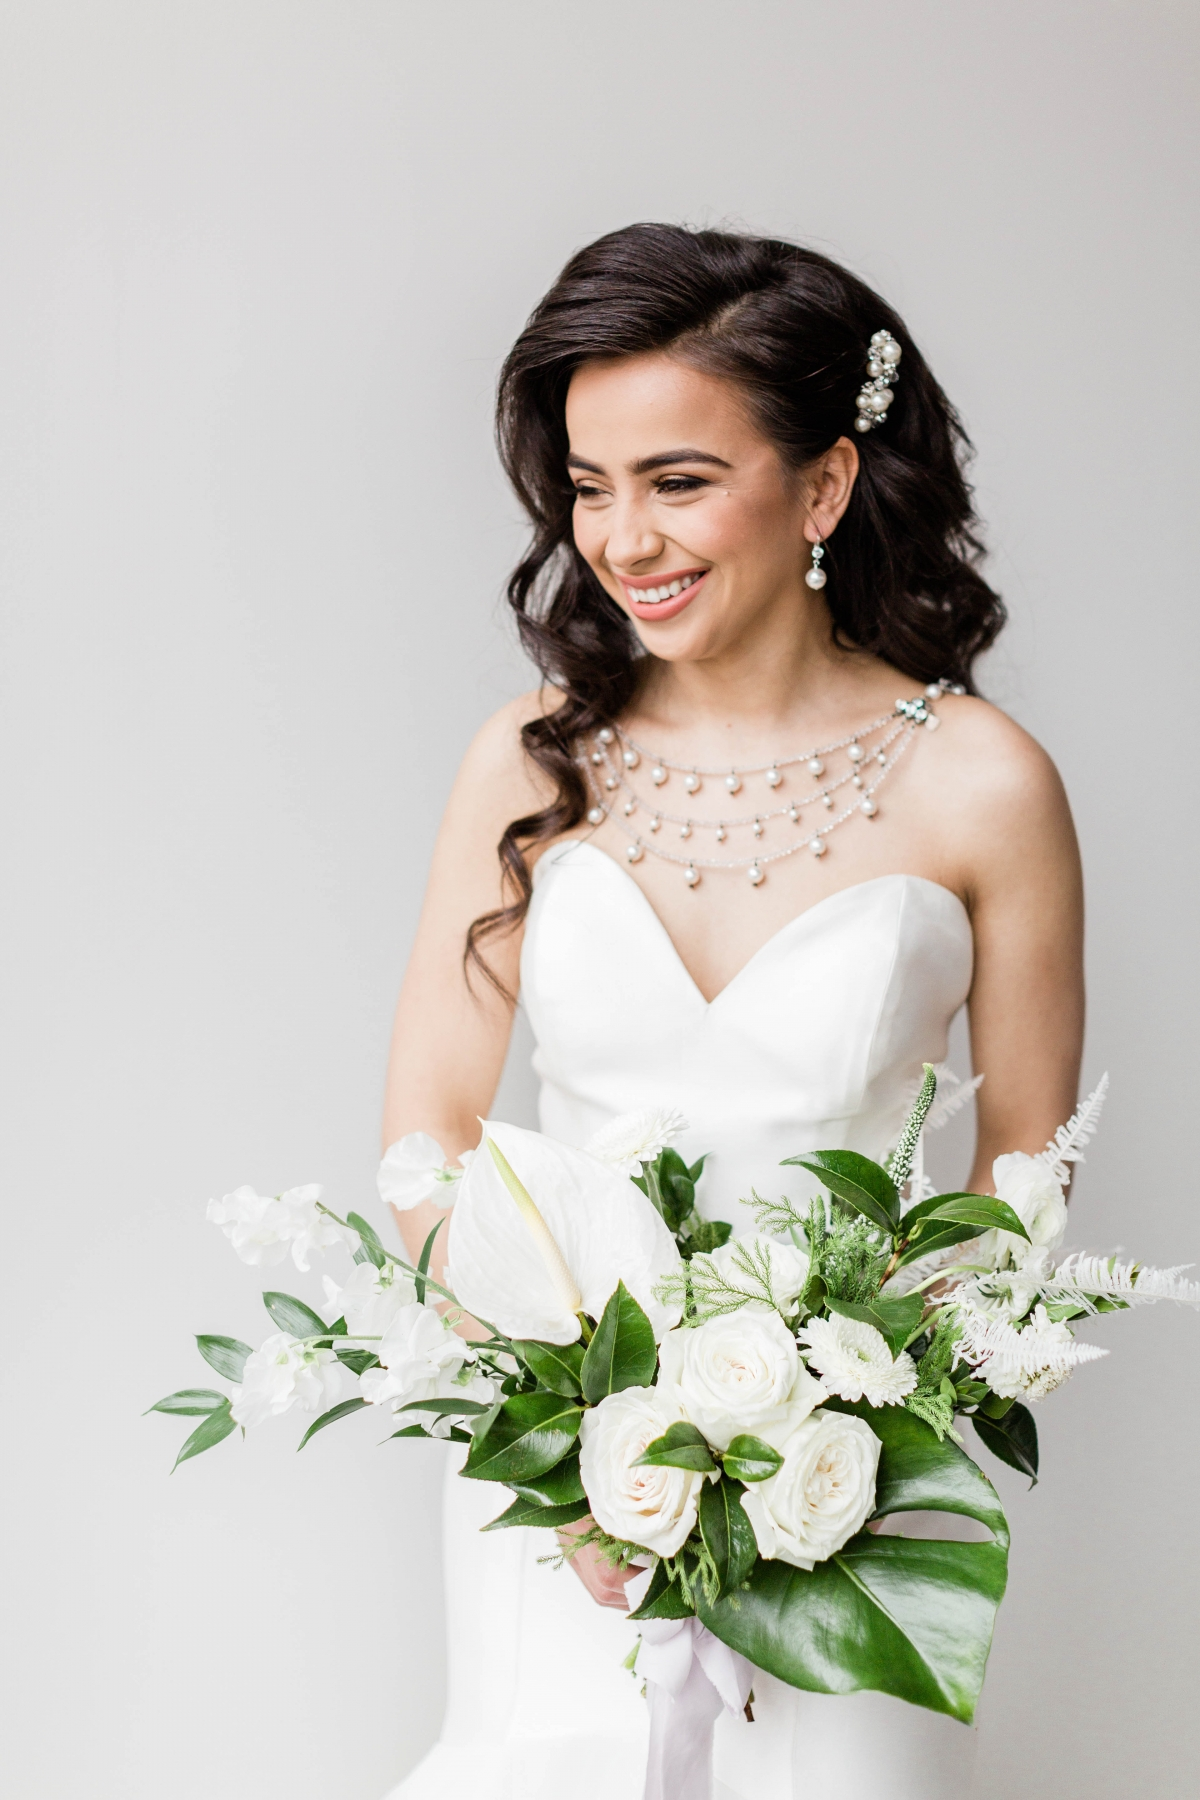 Bride with Statement Necklace